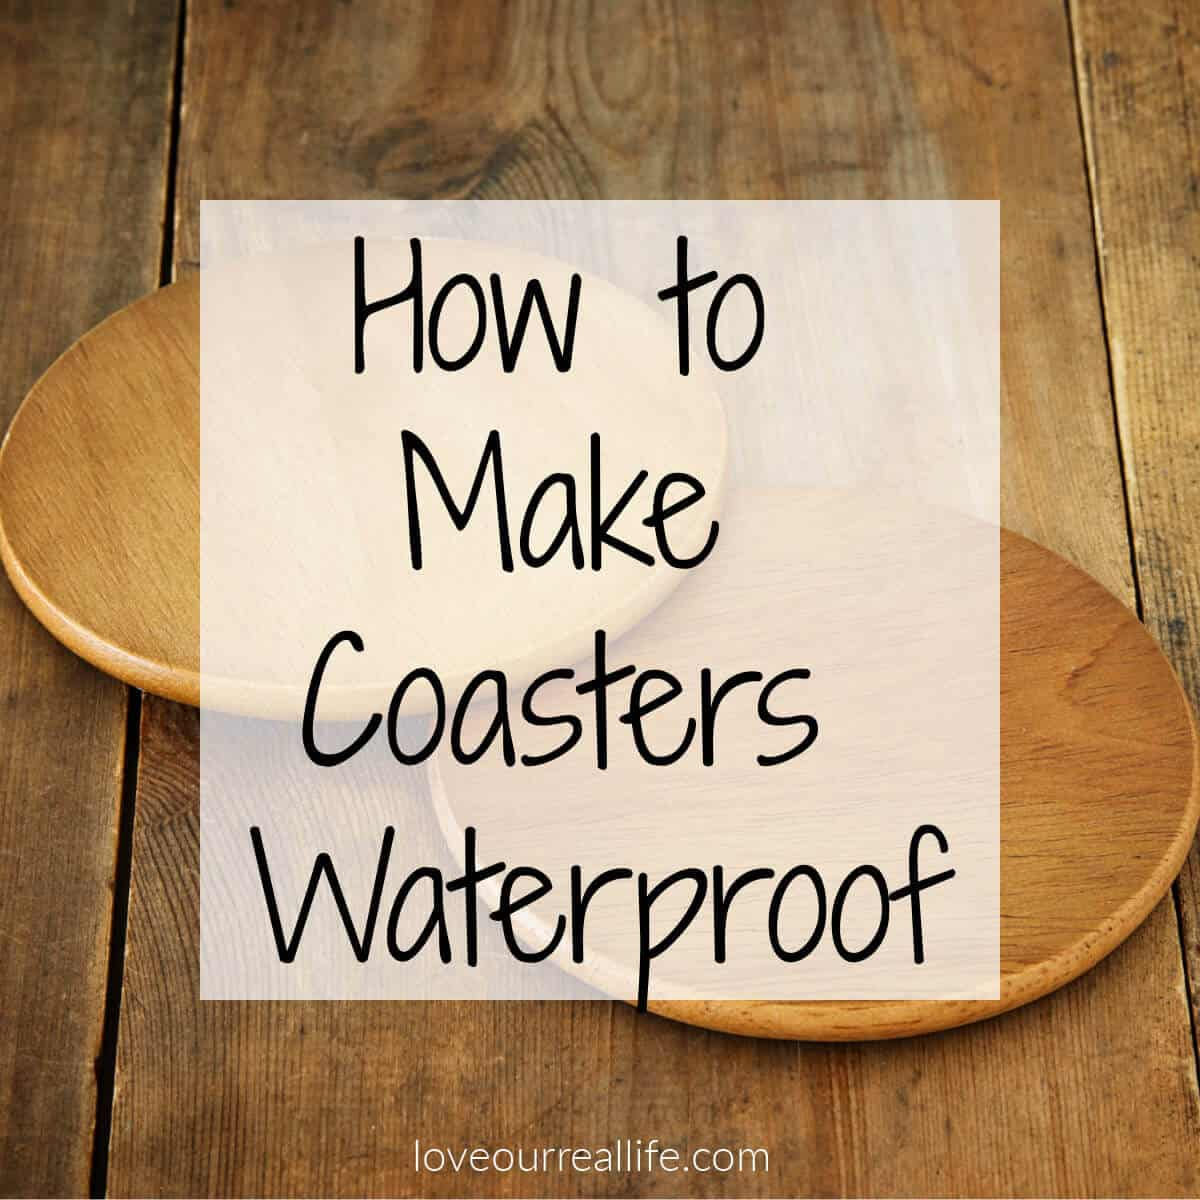 How To Make Coasters Waterproof A Step By Step Guide Love Our Real Life